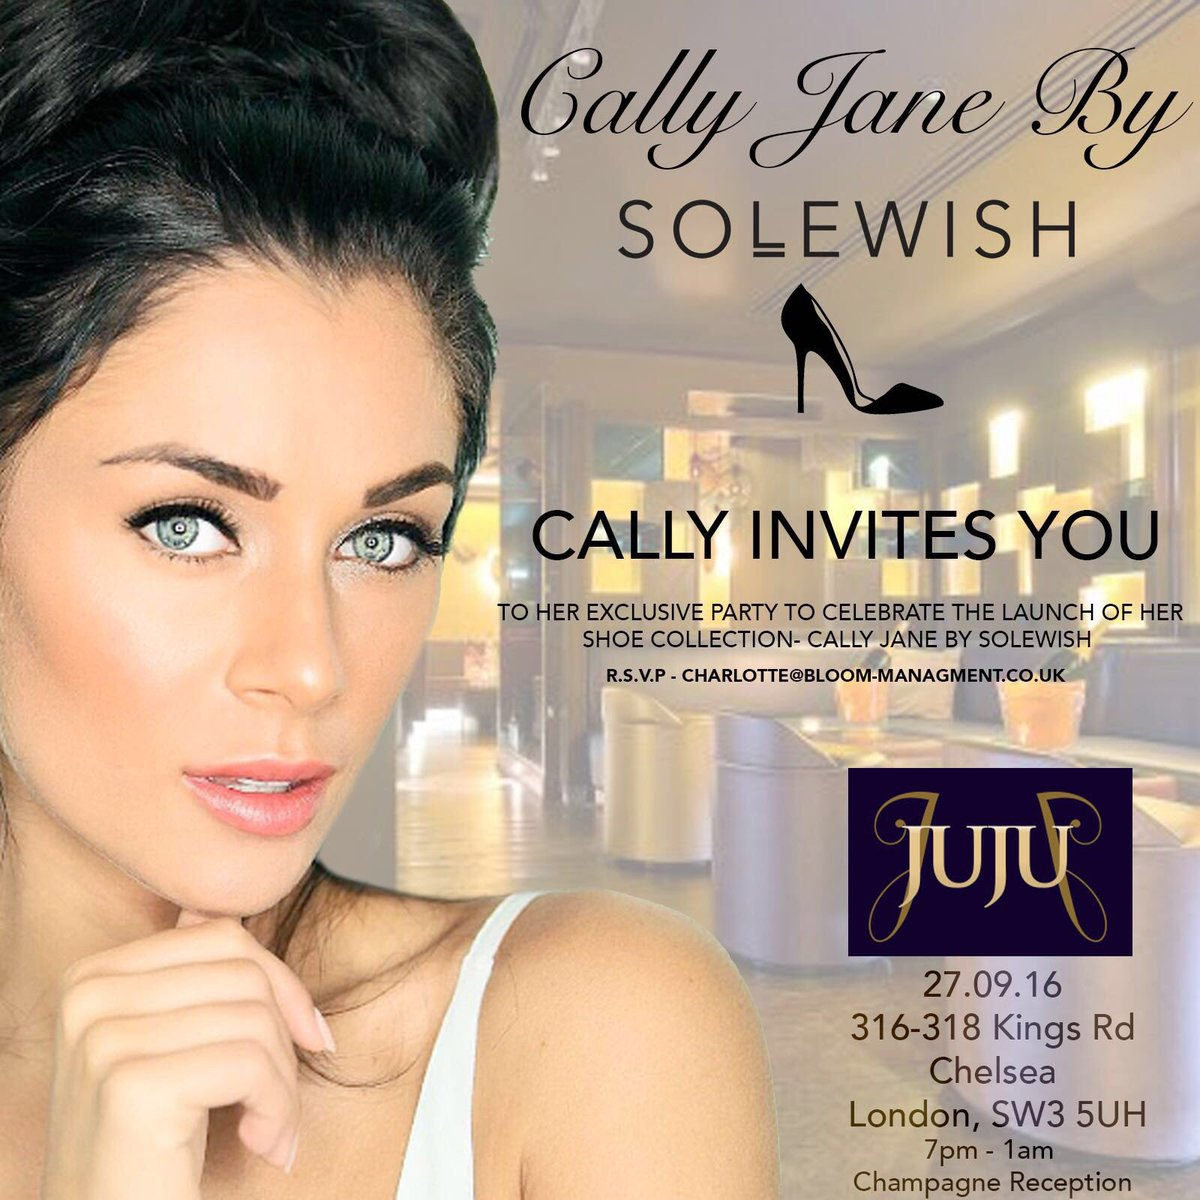 Events coming up @MissCallyJane @collection_cj launch party next Tuesday 27th September #Invitation #Only #SoleWish @JuJuKingsRoad